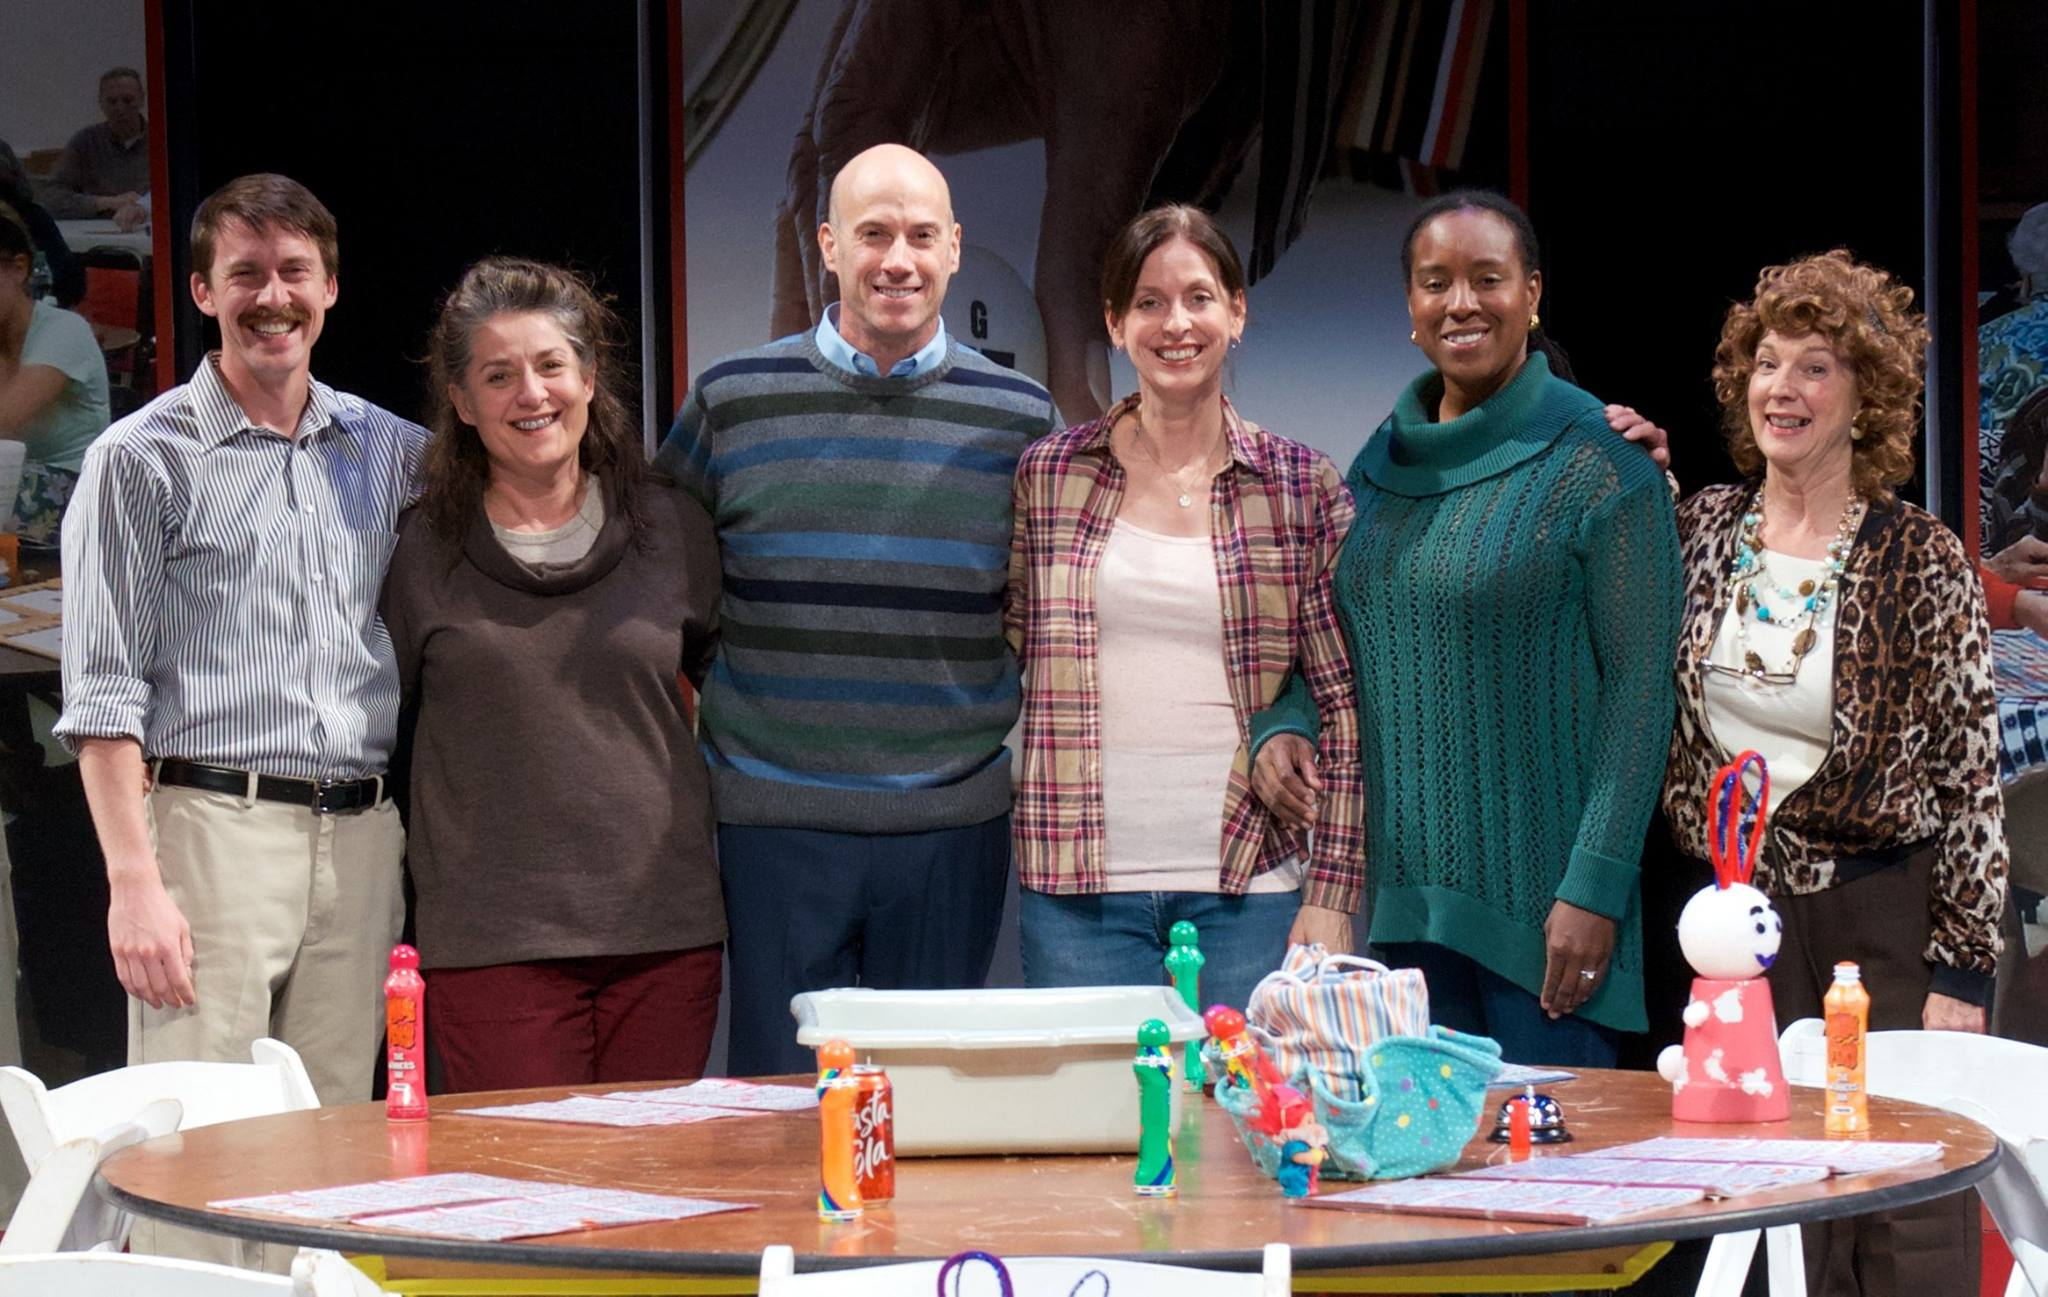 From left: Tyler Eglen, Maria Amorocho, Rusty Ferracane, Katie McFadzen, Shanique Scott, Cathy Dresbach. (Photo by John Groseclose)